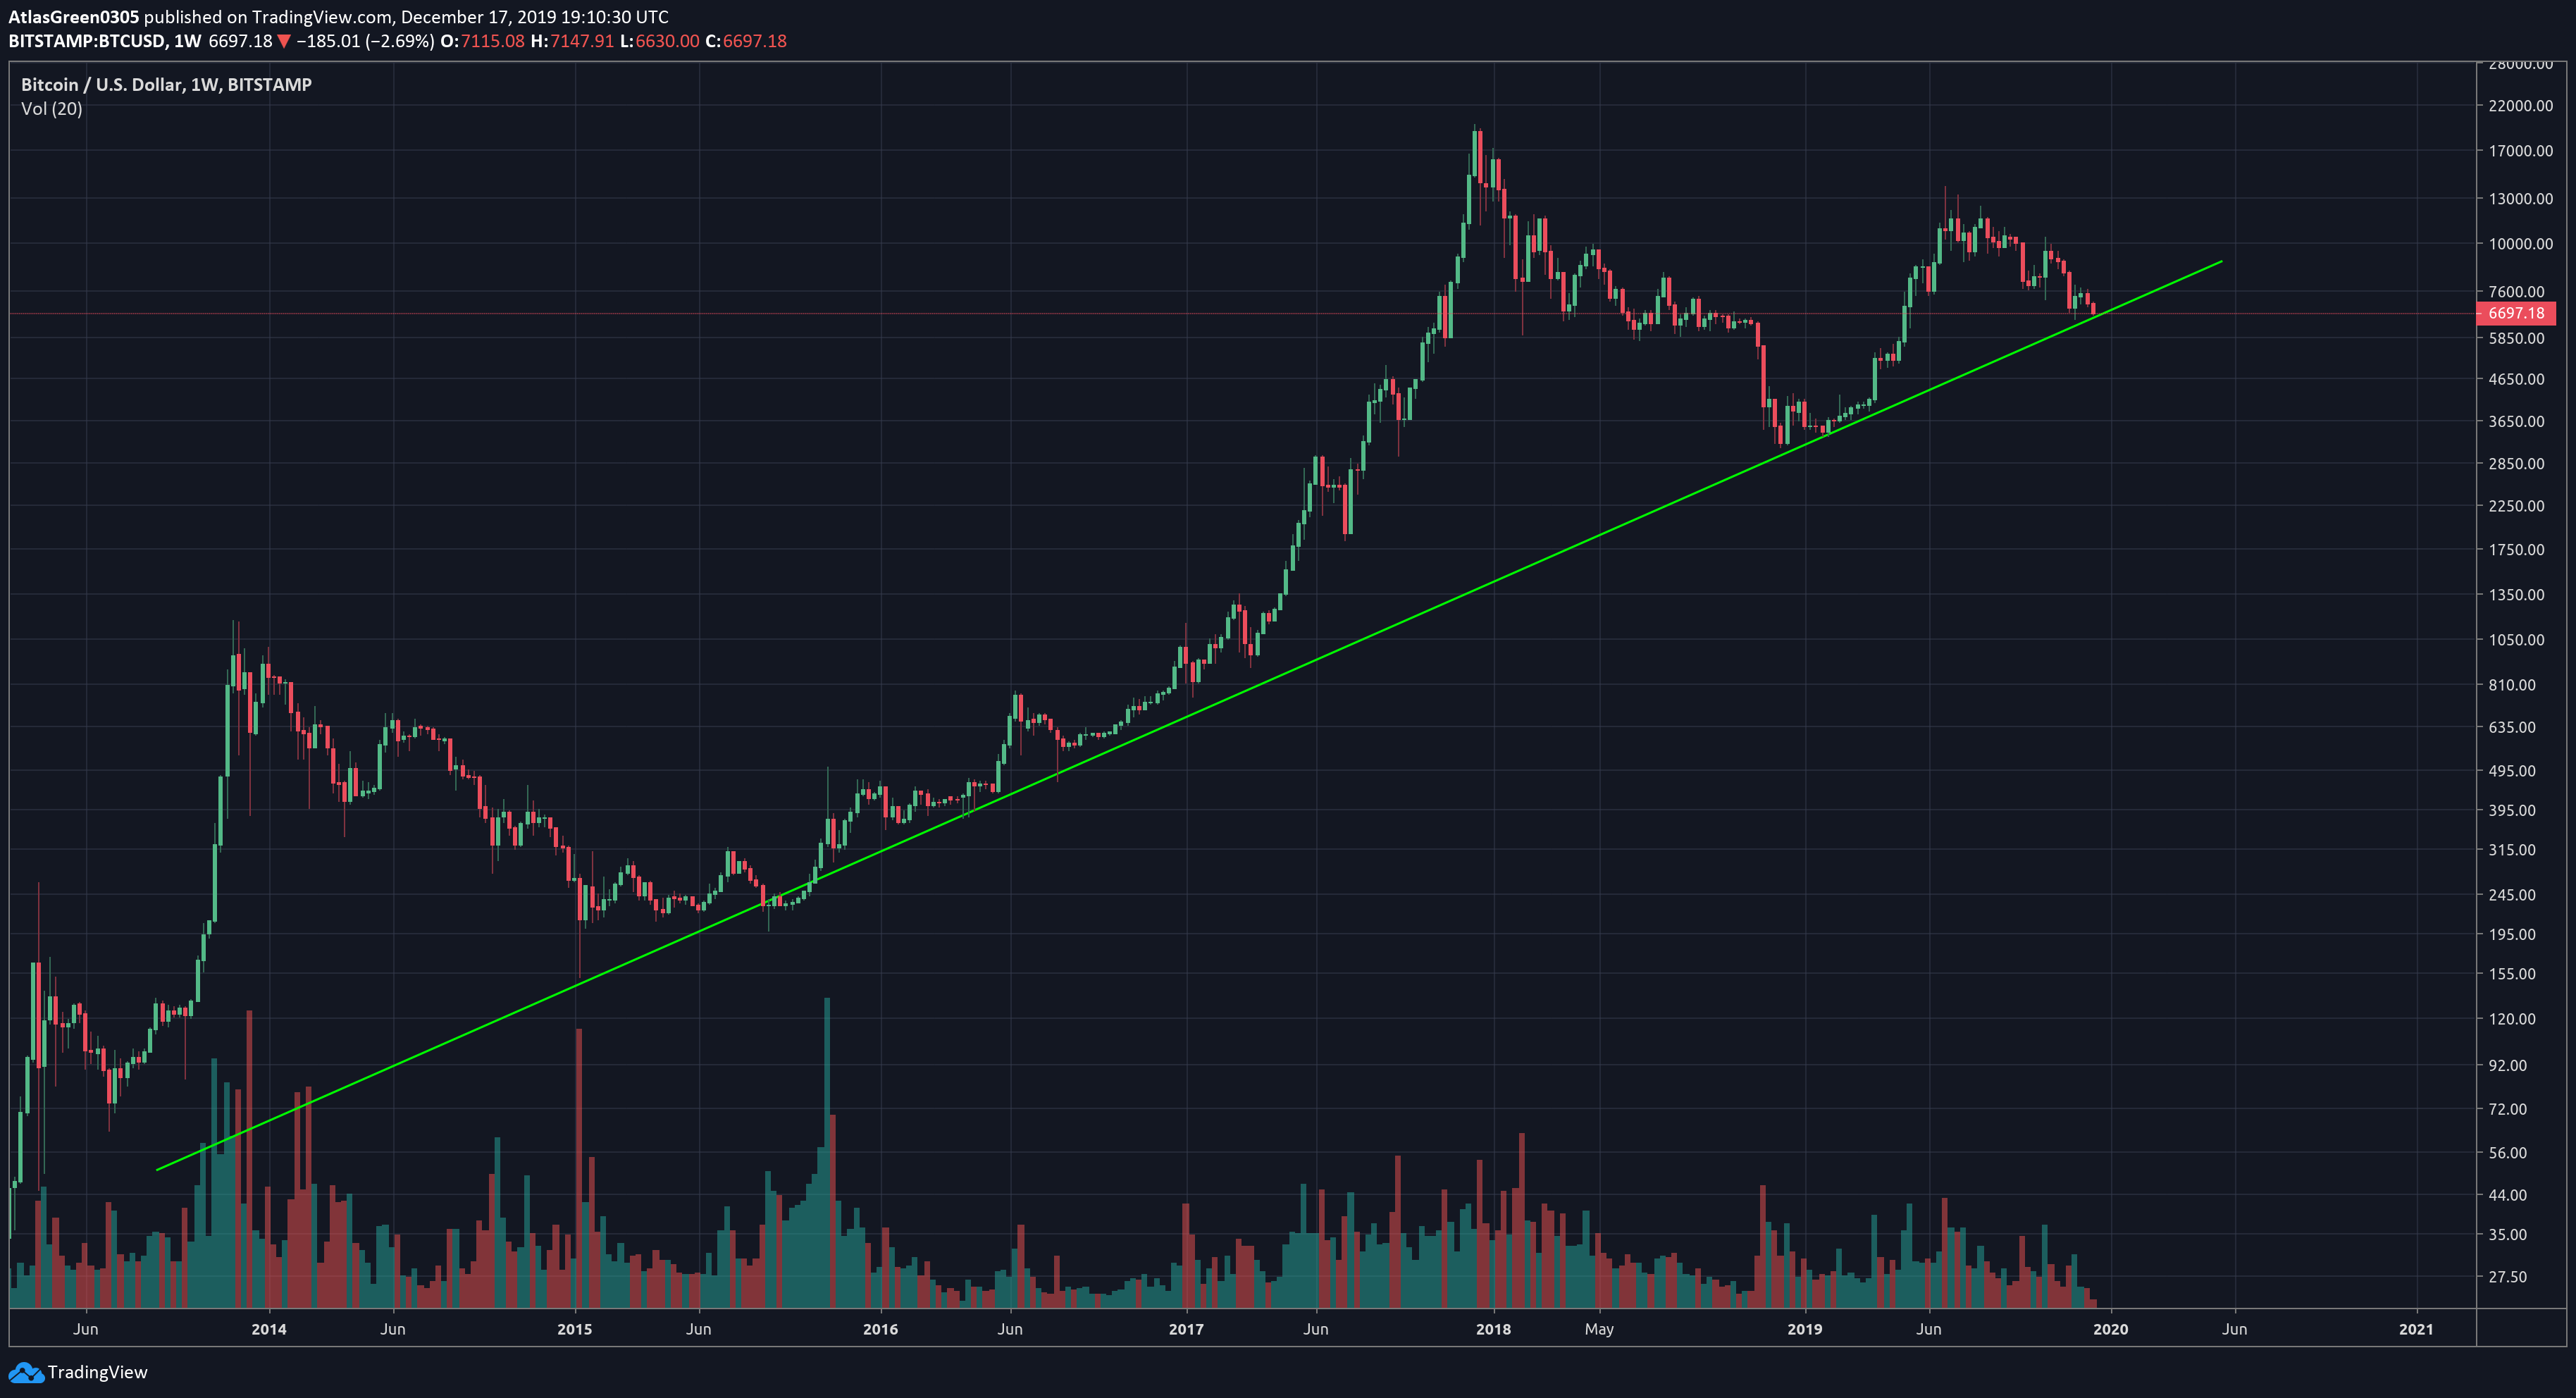 TradingView Weekly Chart for Bitcoin.